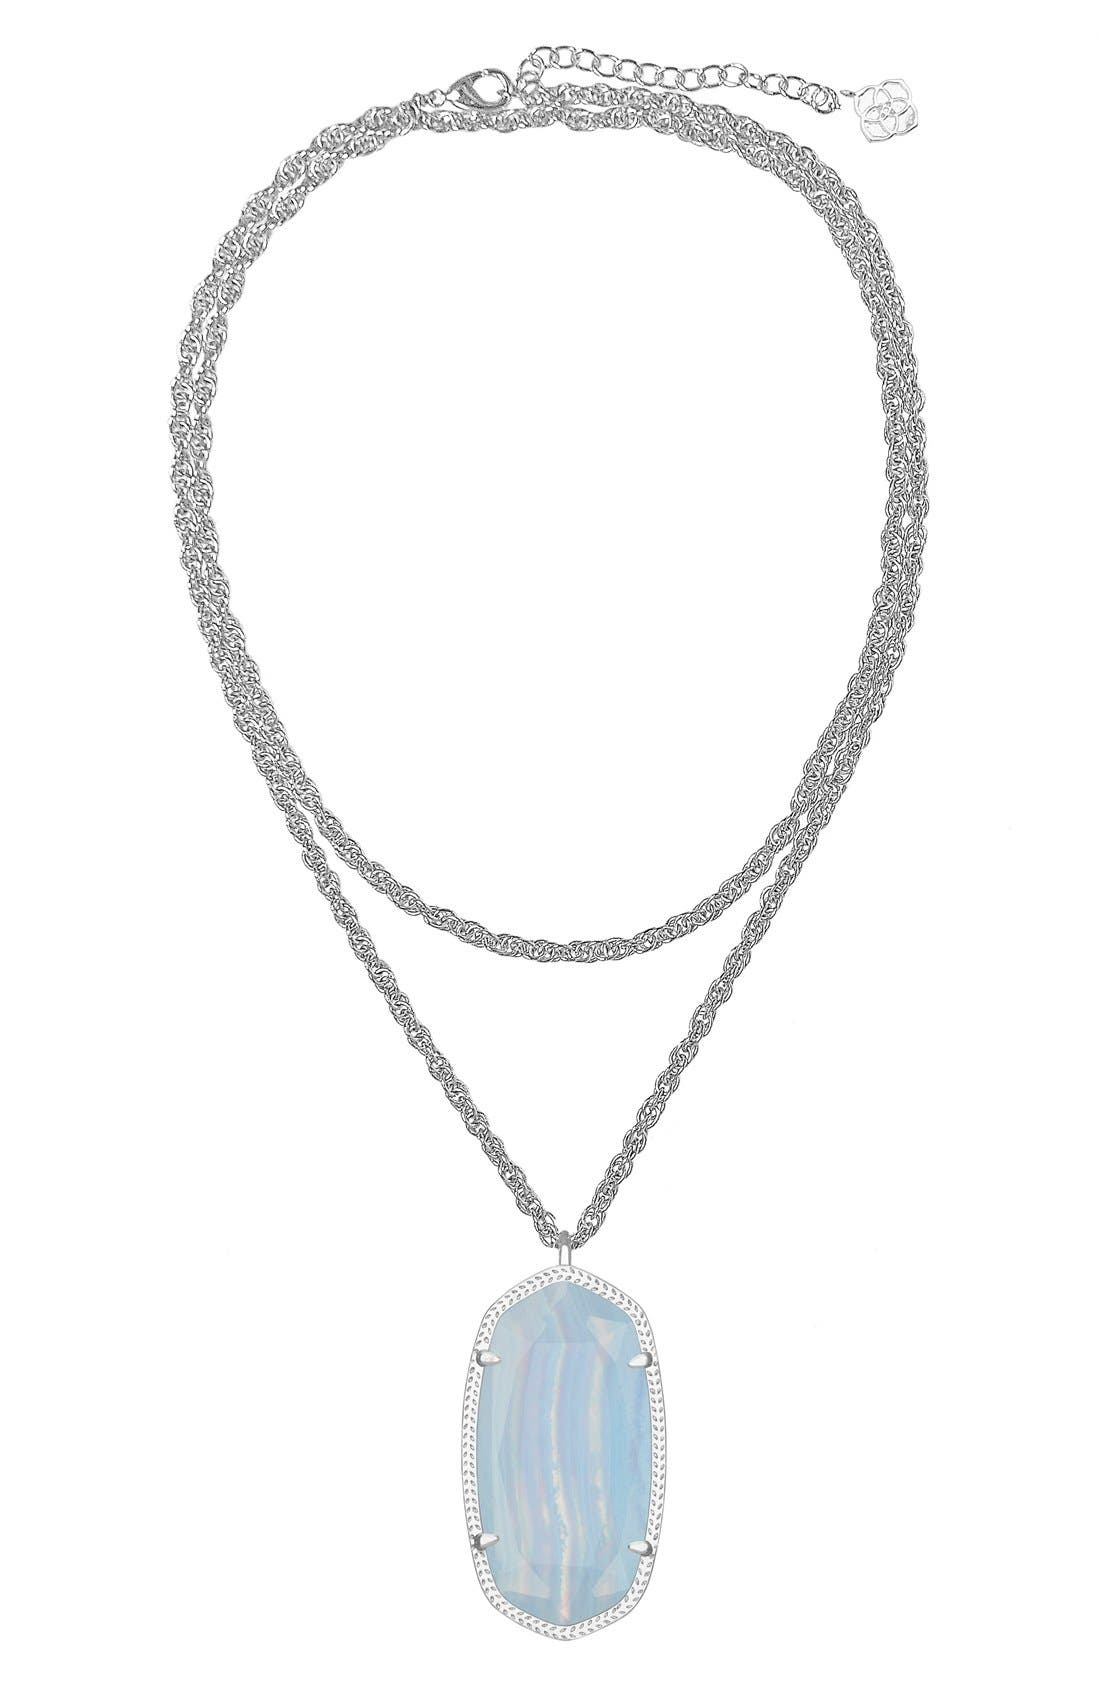 Main Image - Kendra Scott 'Rae' Long Pendant Necklace